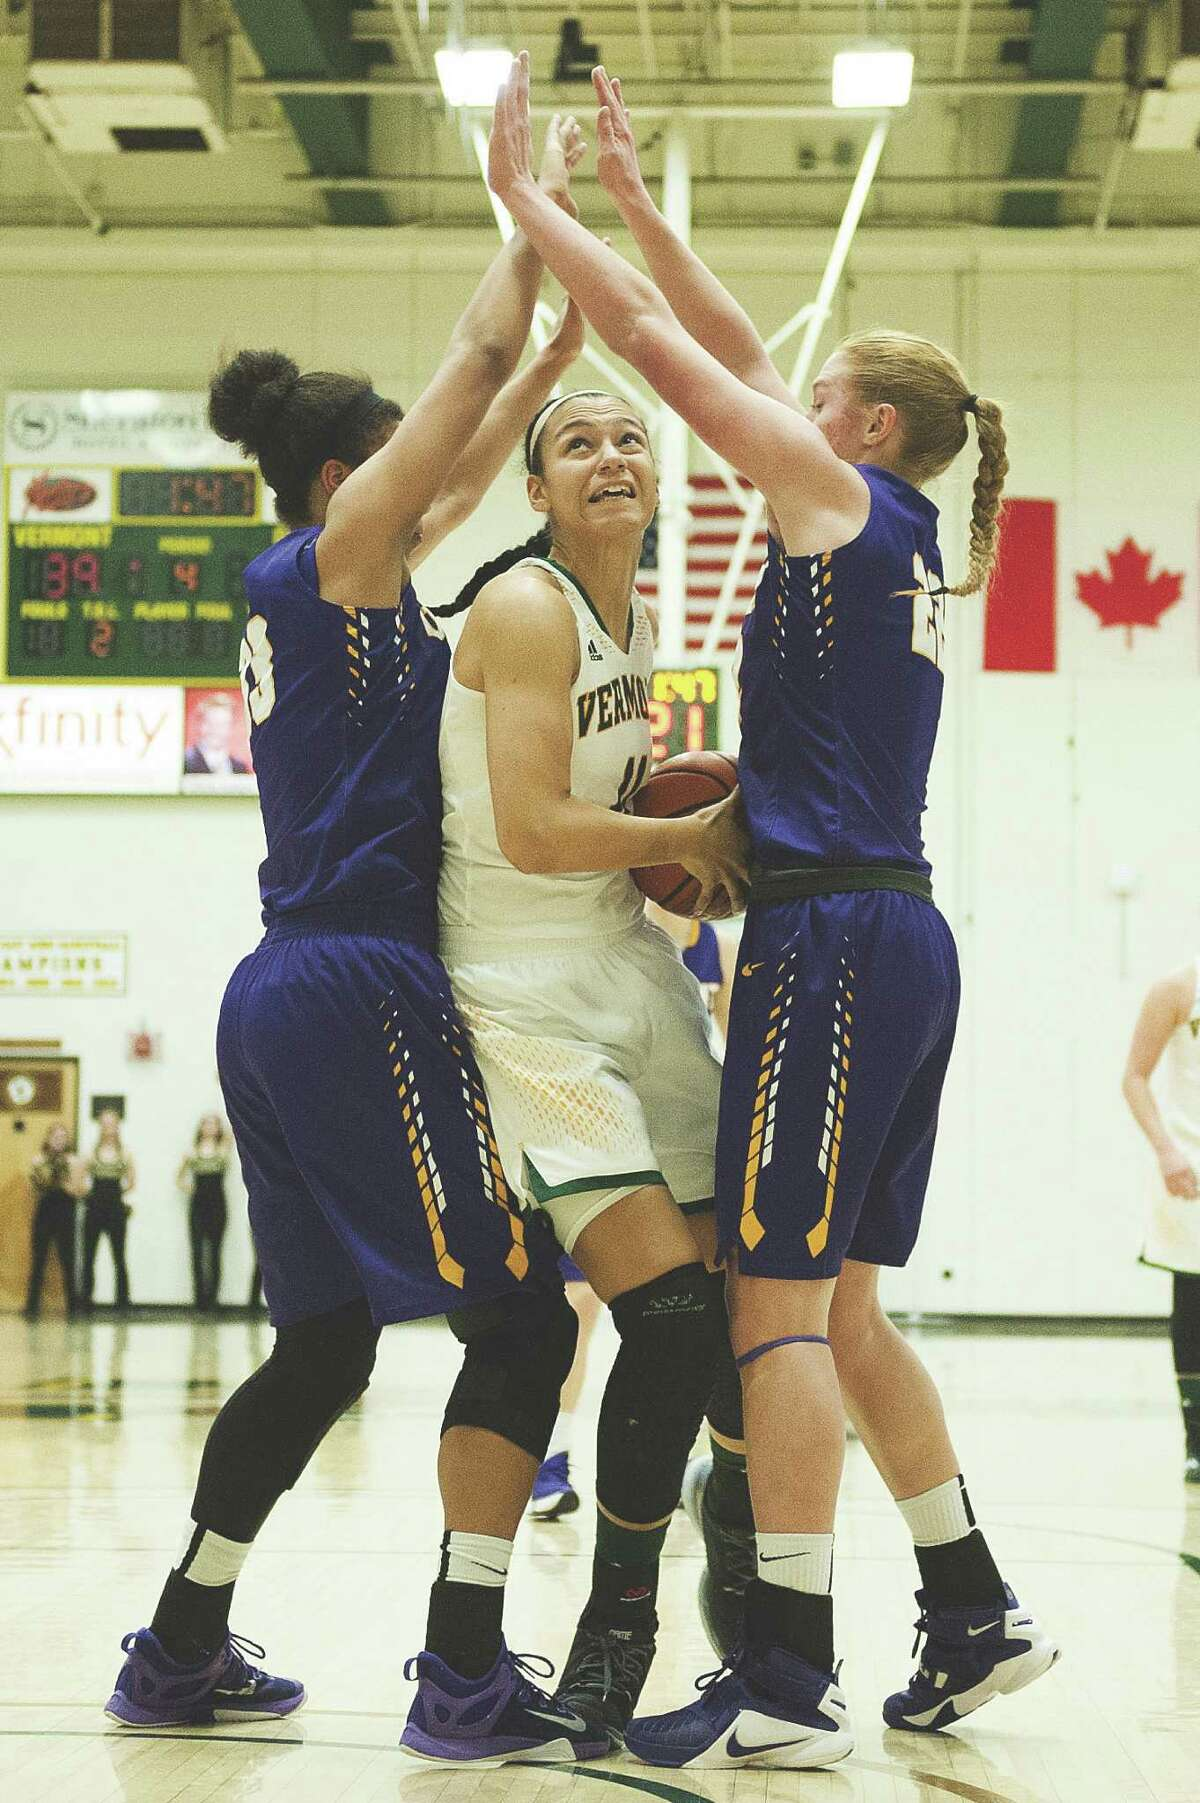 Vermont's Candice Wright (11) is guarded by Albany's Tiana-Jo Carter (33) and Heather Forster (22) during the women's basketball game between the Albany Great Danes and the Vermont Catamounts at Patrick Gym on Saturday afternoon February 6, 2016 in Burlington. (BRIAN JENKINS/for the FREE PRESS)